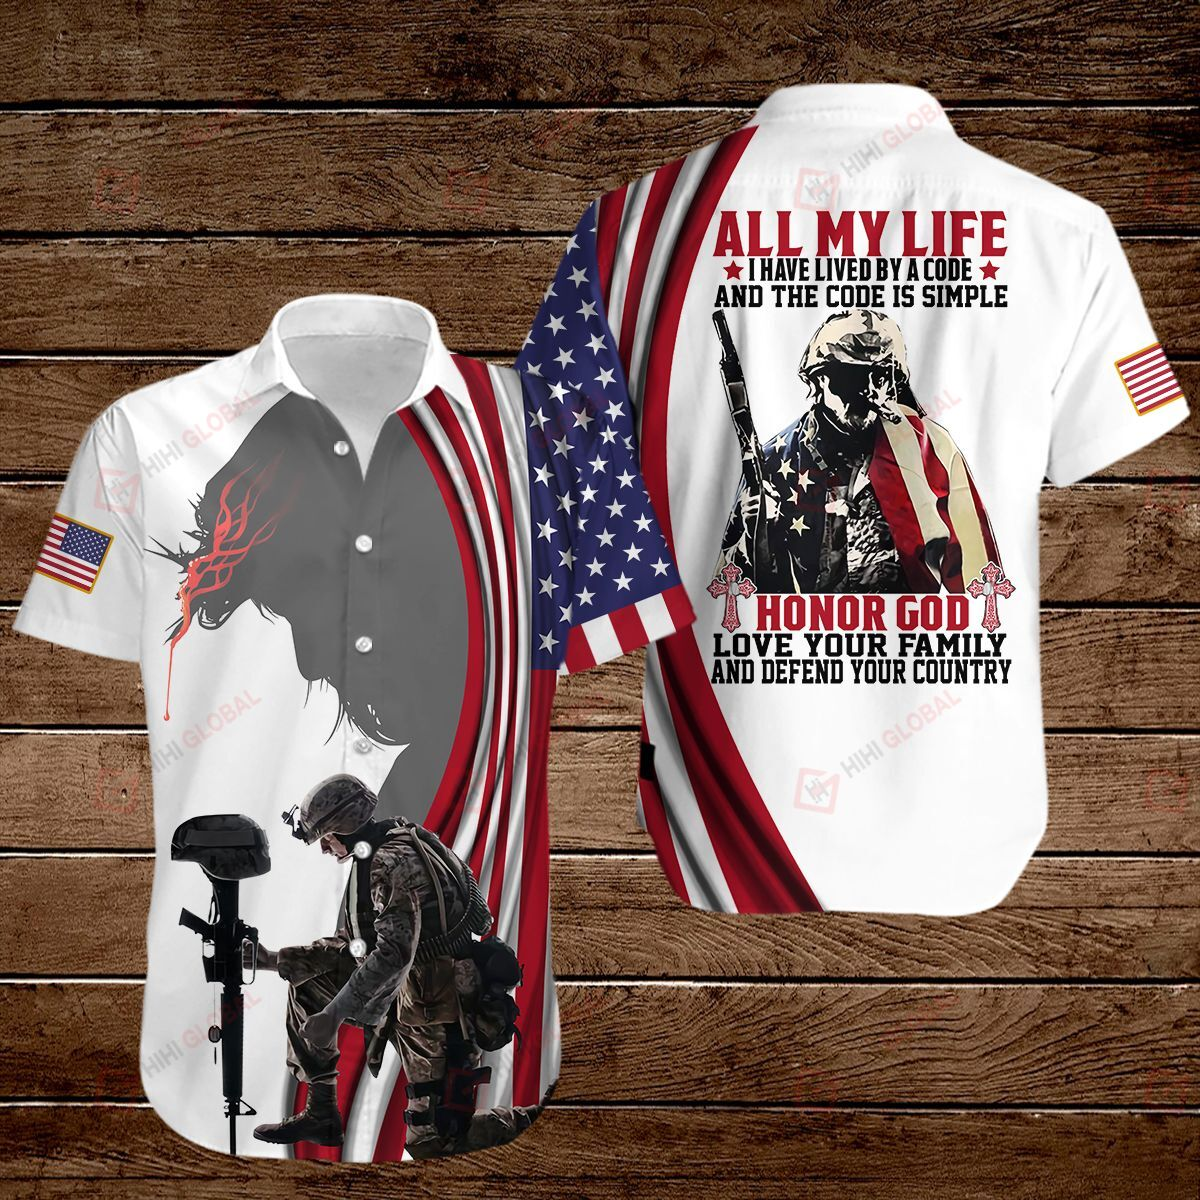 All my life honor God love your family and defend your country American Flag 3D Shirt